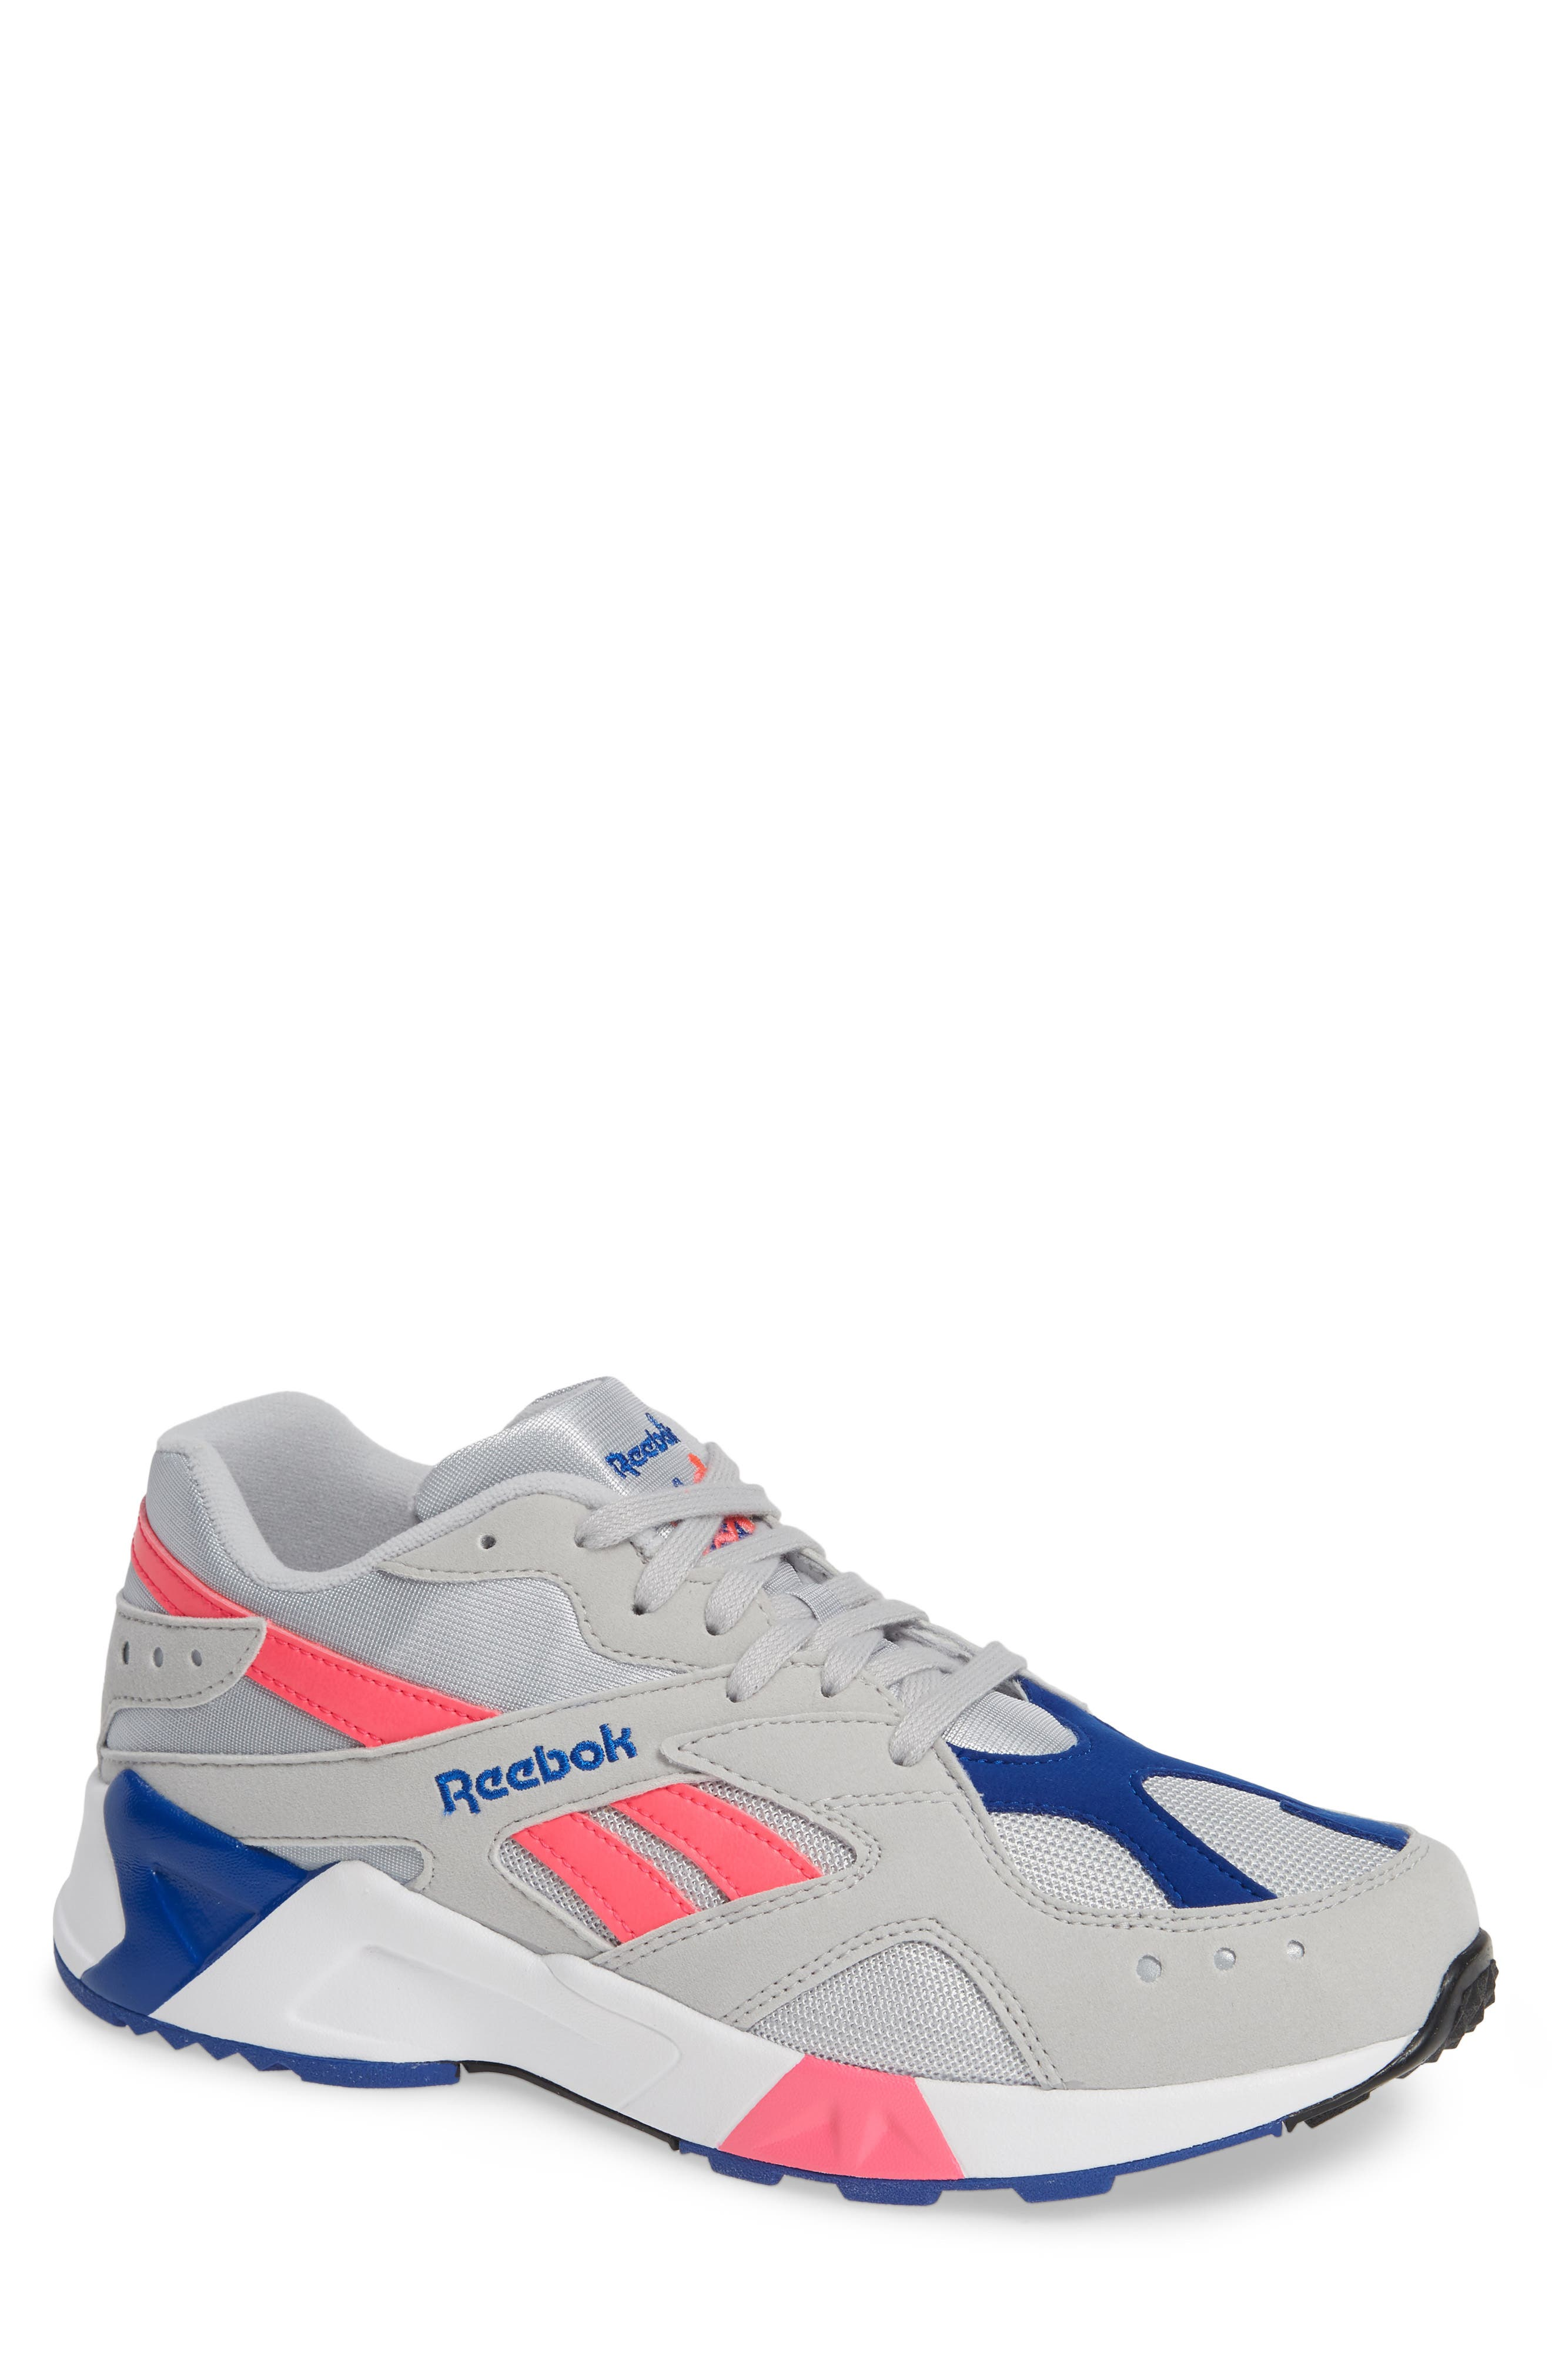 Aztrek Sneaker,                         Main,                         color, GREY/ PINK/ COLLEGIATE ROYAL